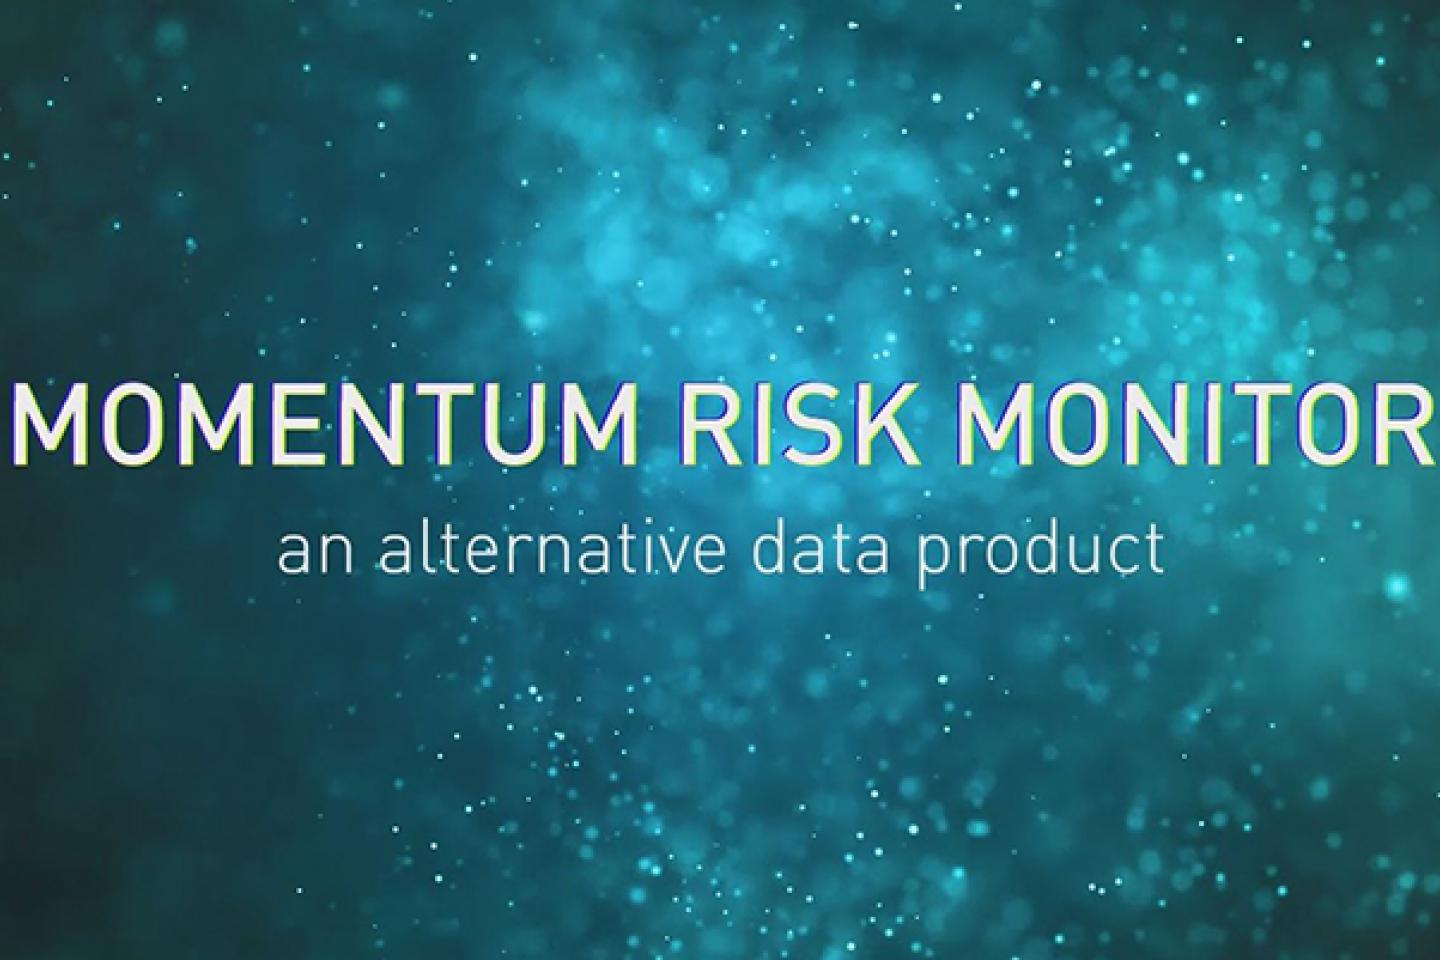 Momentum Risk Monitor